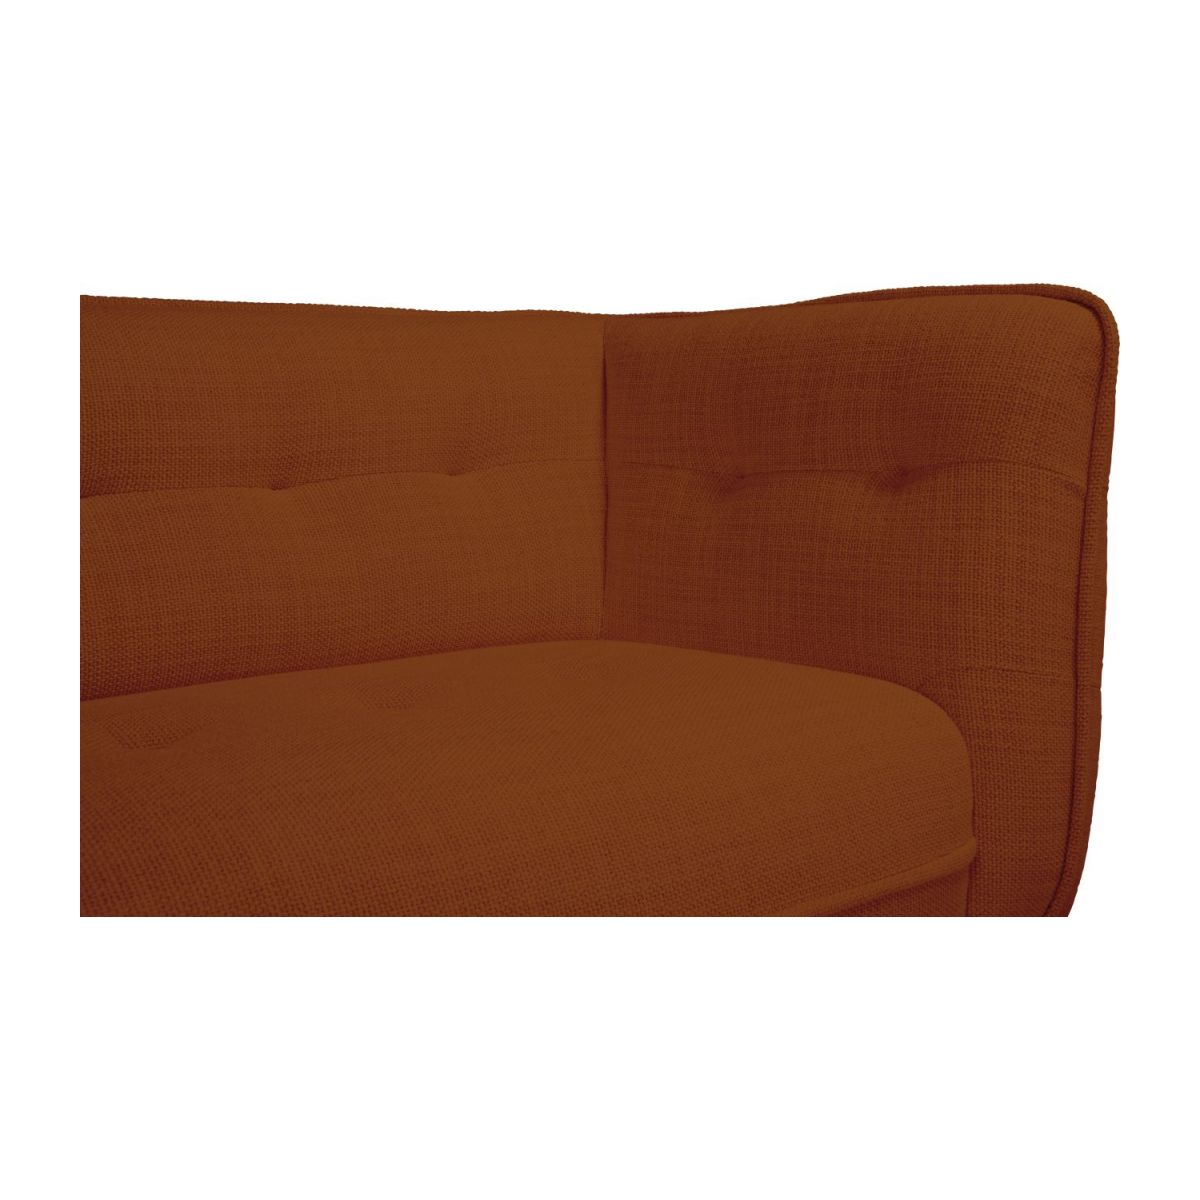 3 seater sofa in Fasoli fabric, warm red rock and oak legs n°6